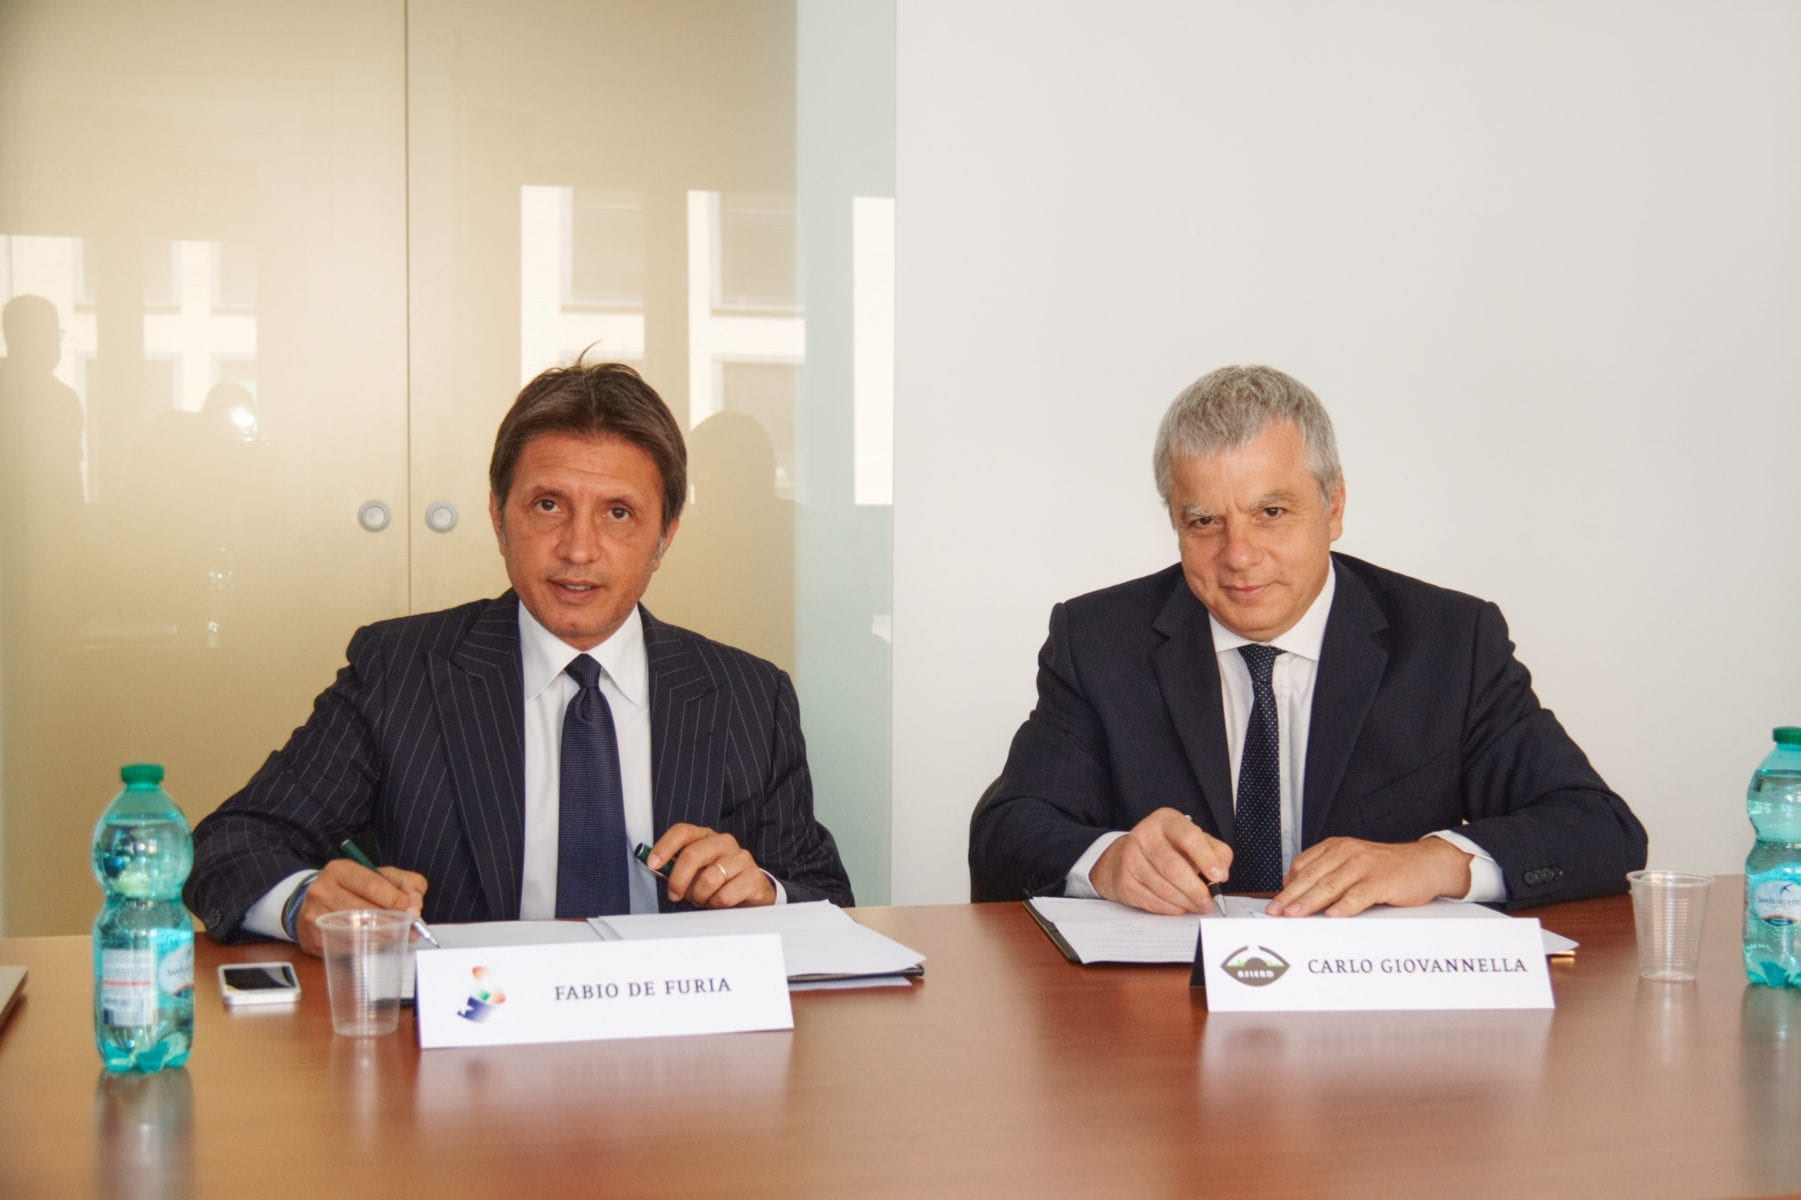 Fabio De Furia (MSIC) and Carlo Giovanella (ASLERD) sign the agreement.